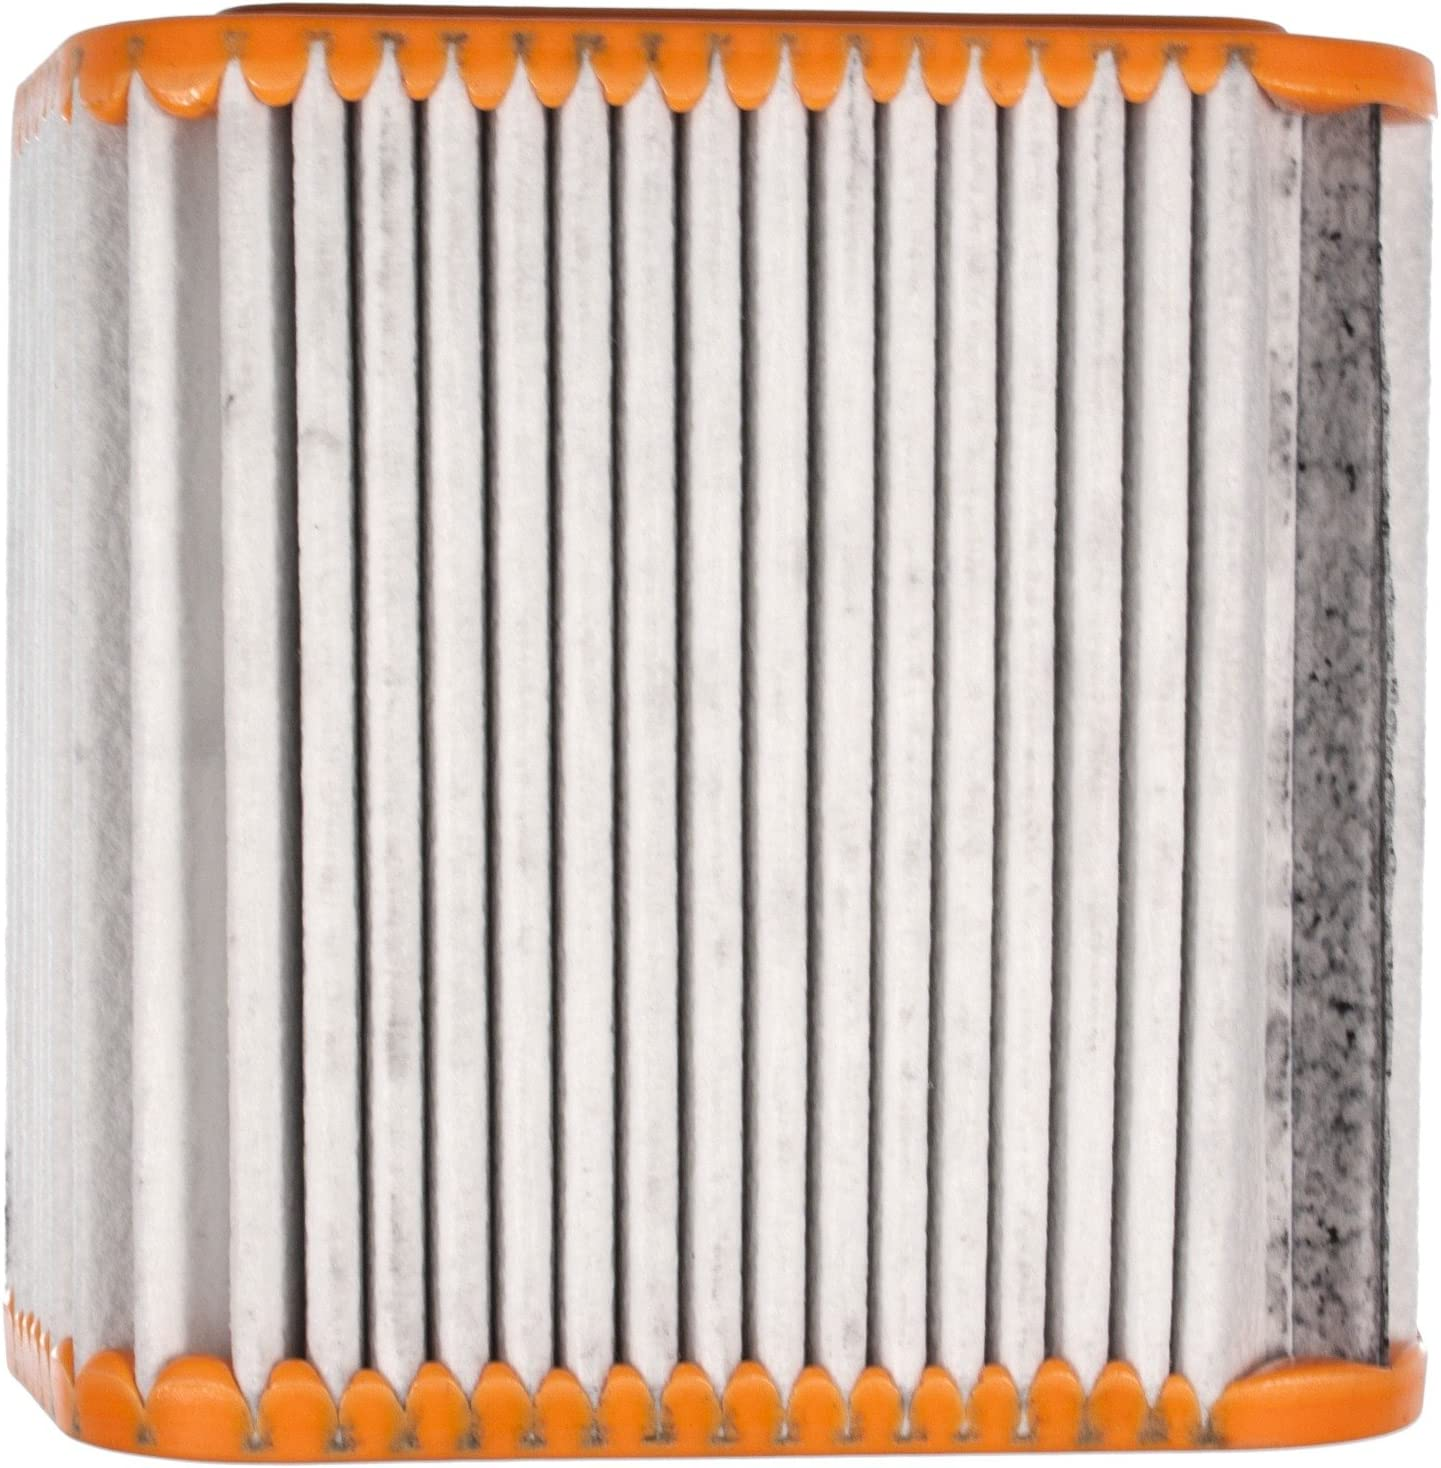 MAHLE Original LX 1667 Air Filter